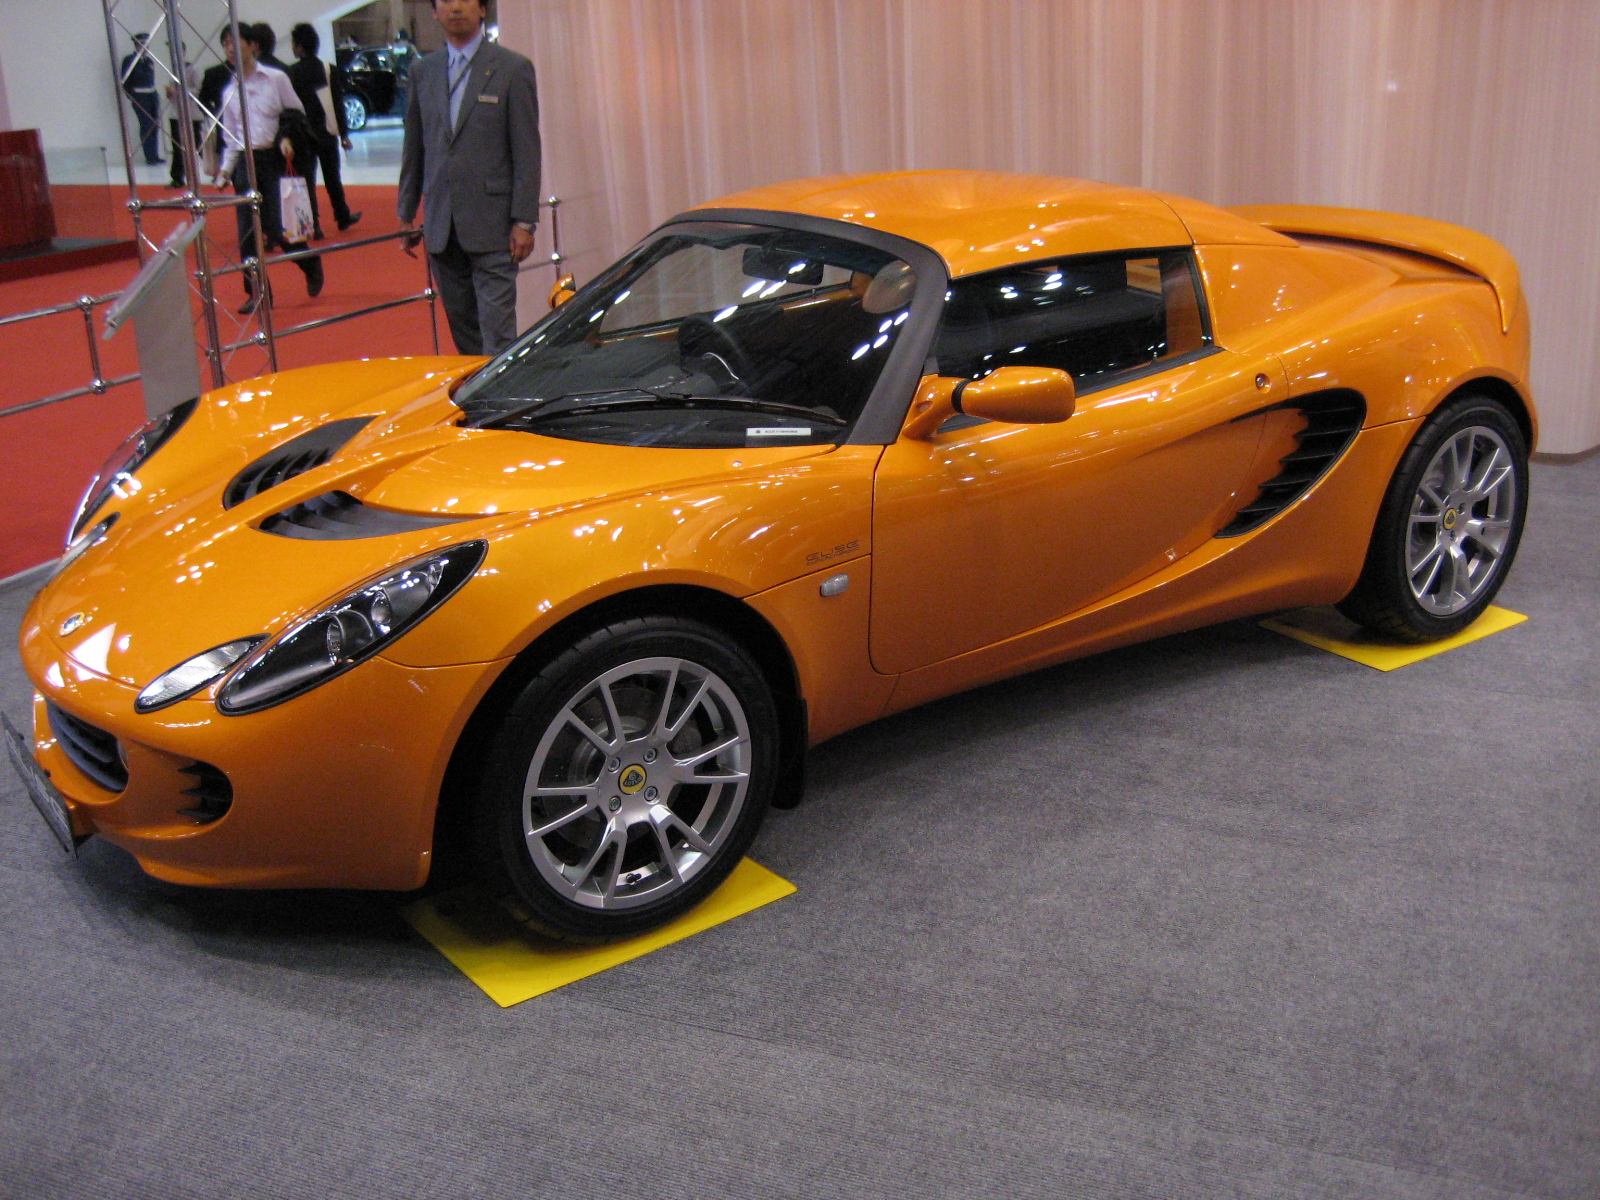 Lotus Elise SC Free Picture Download Image Of